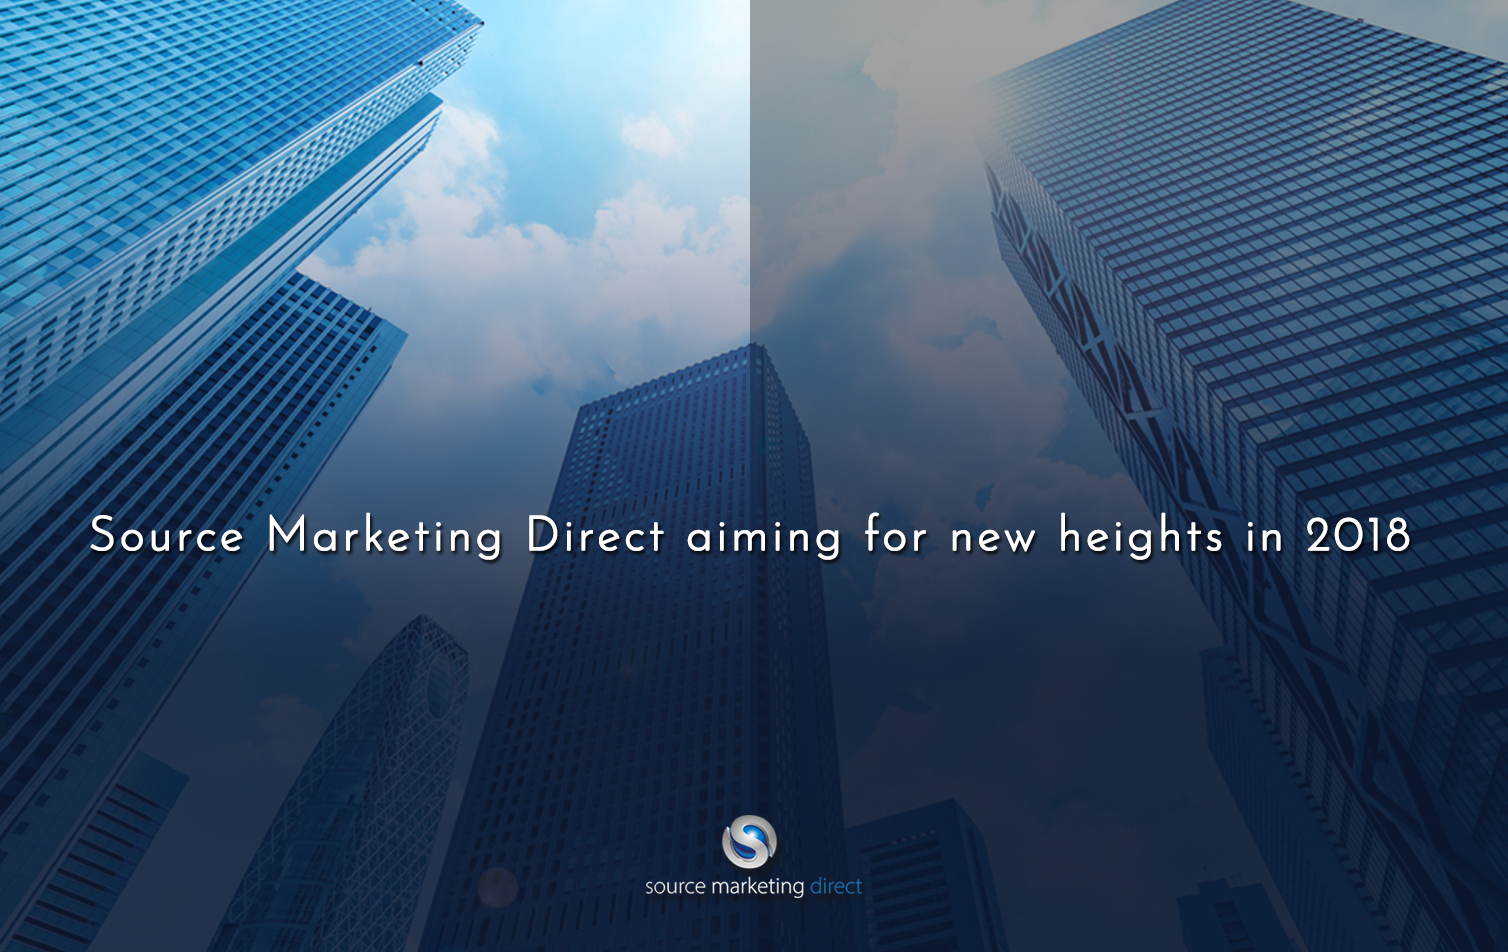 Source Marketing Direct aiming for new heights in 2018